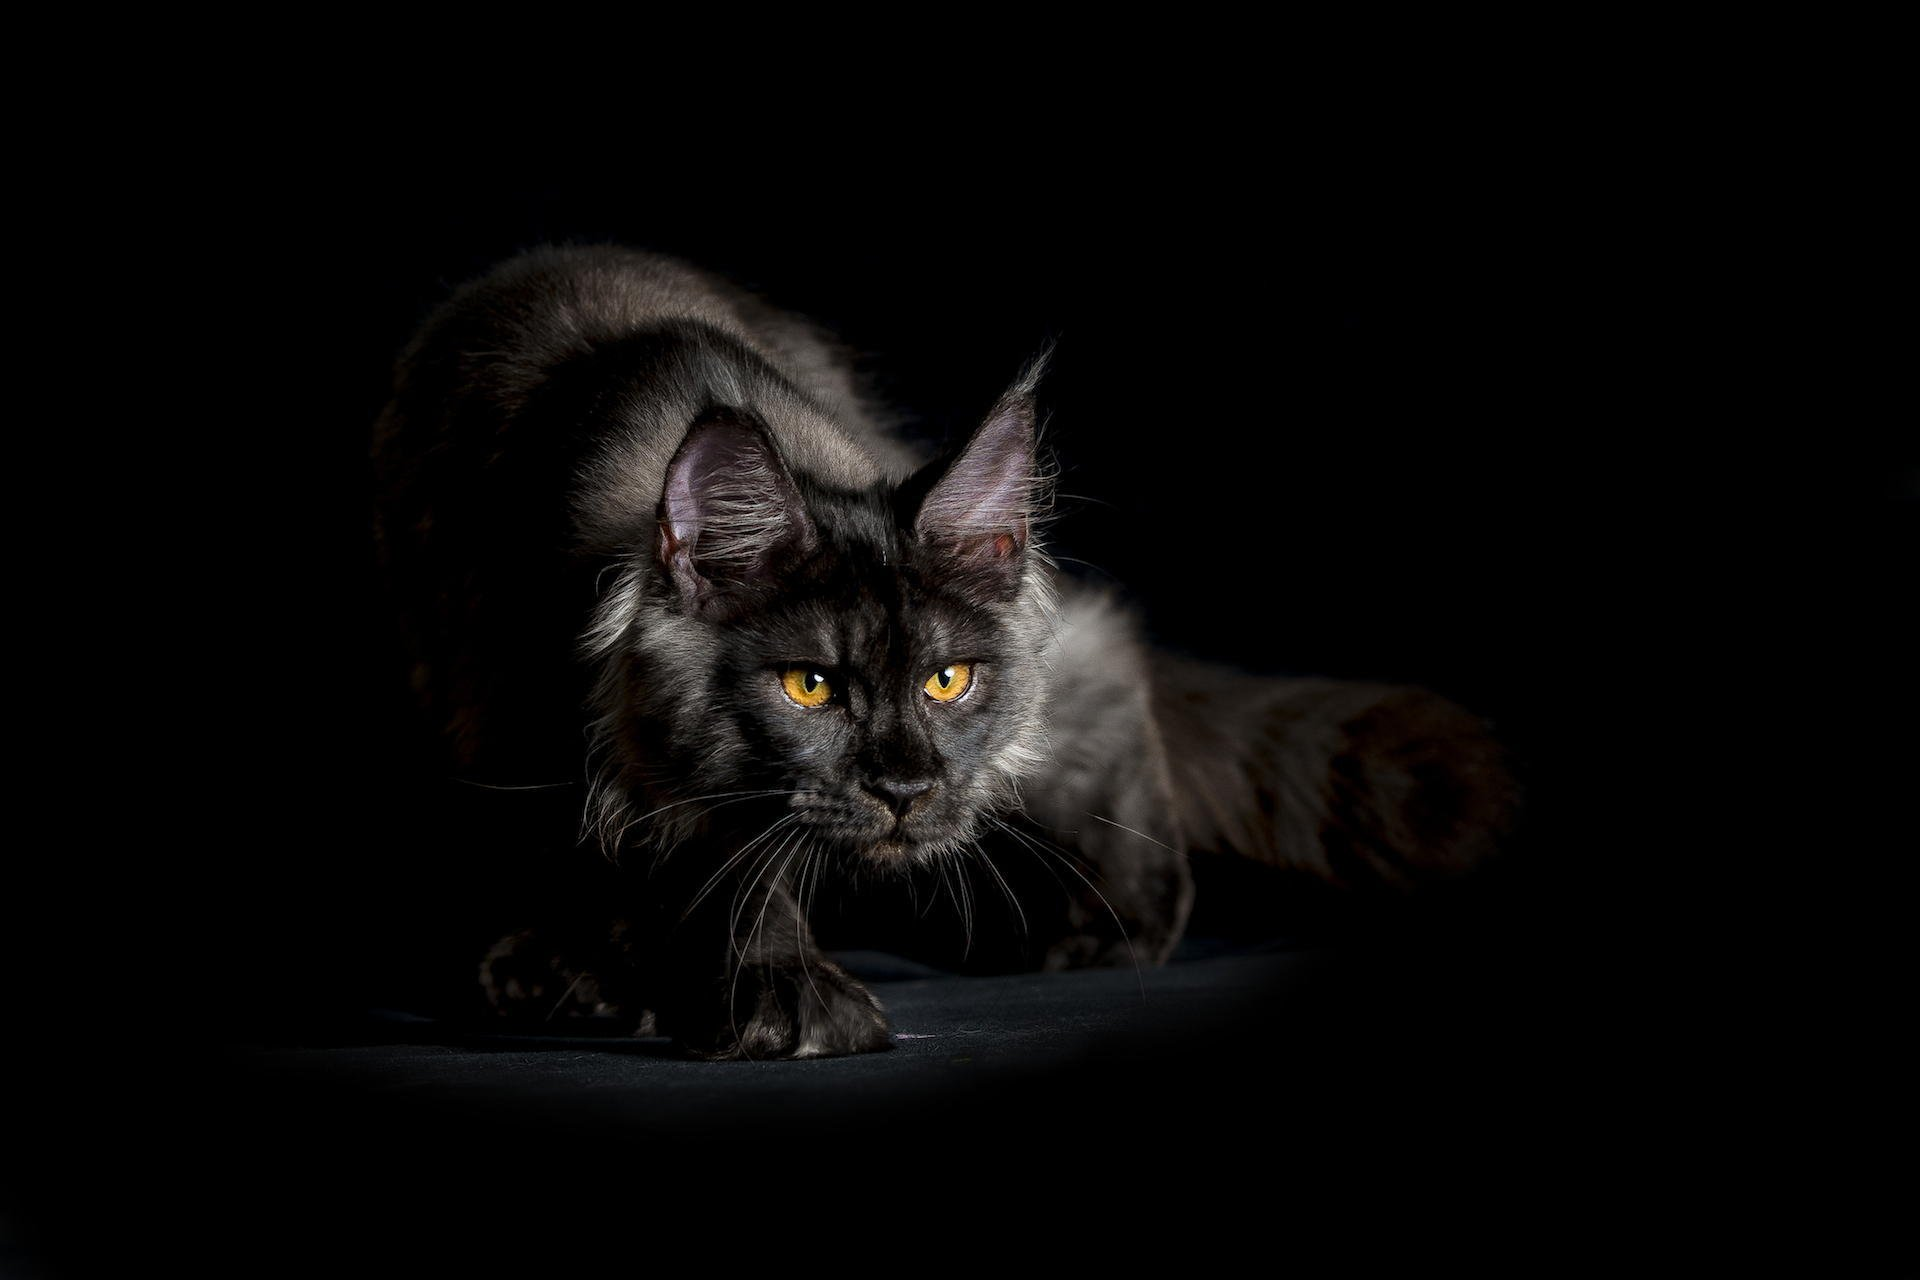 maine coon cat black shaggy view background